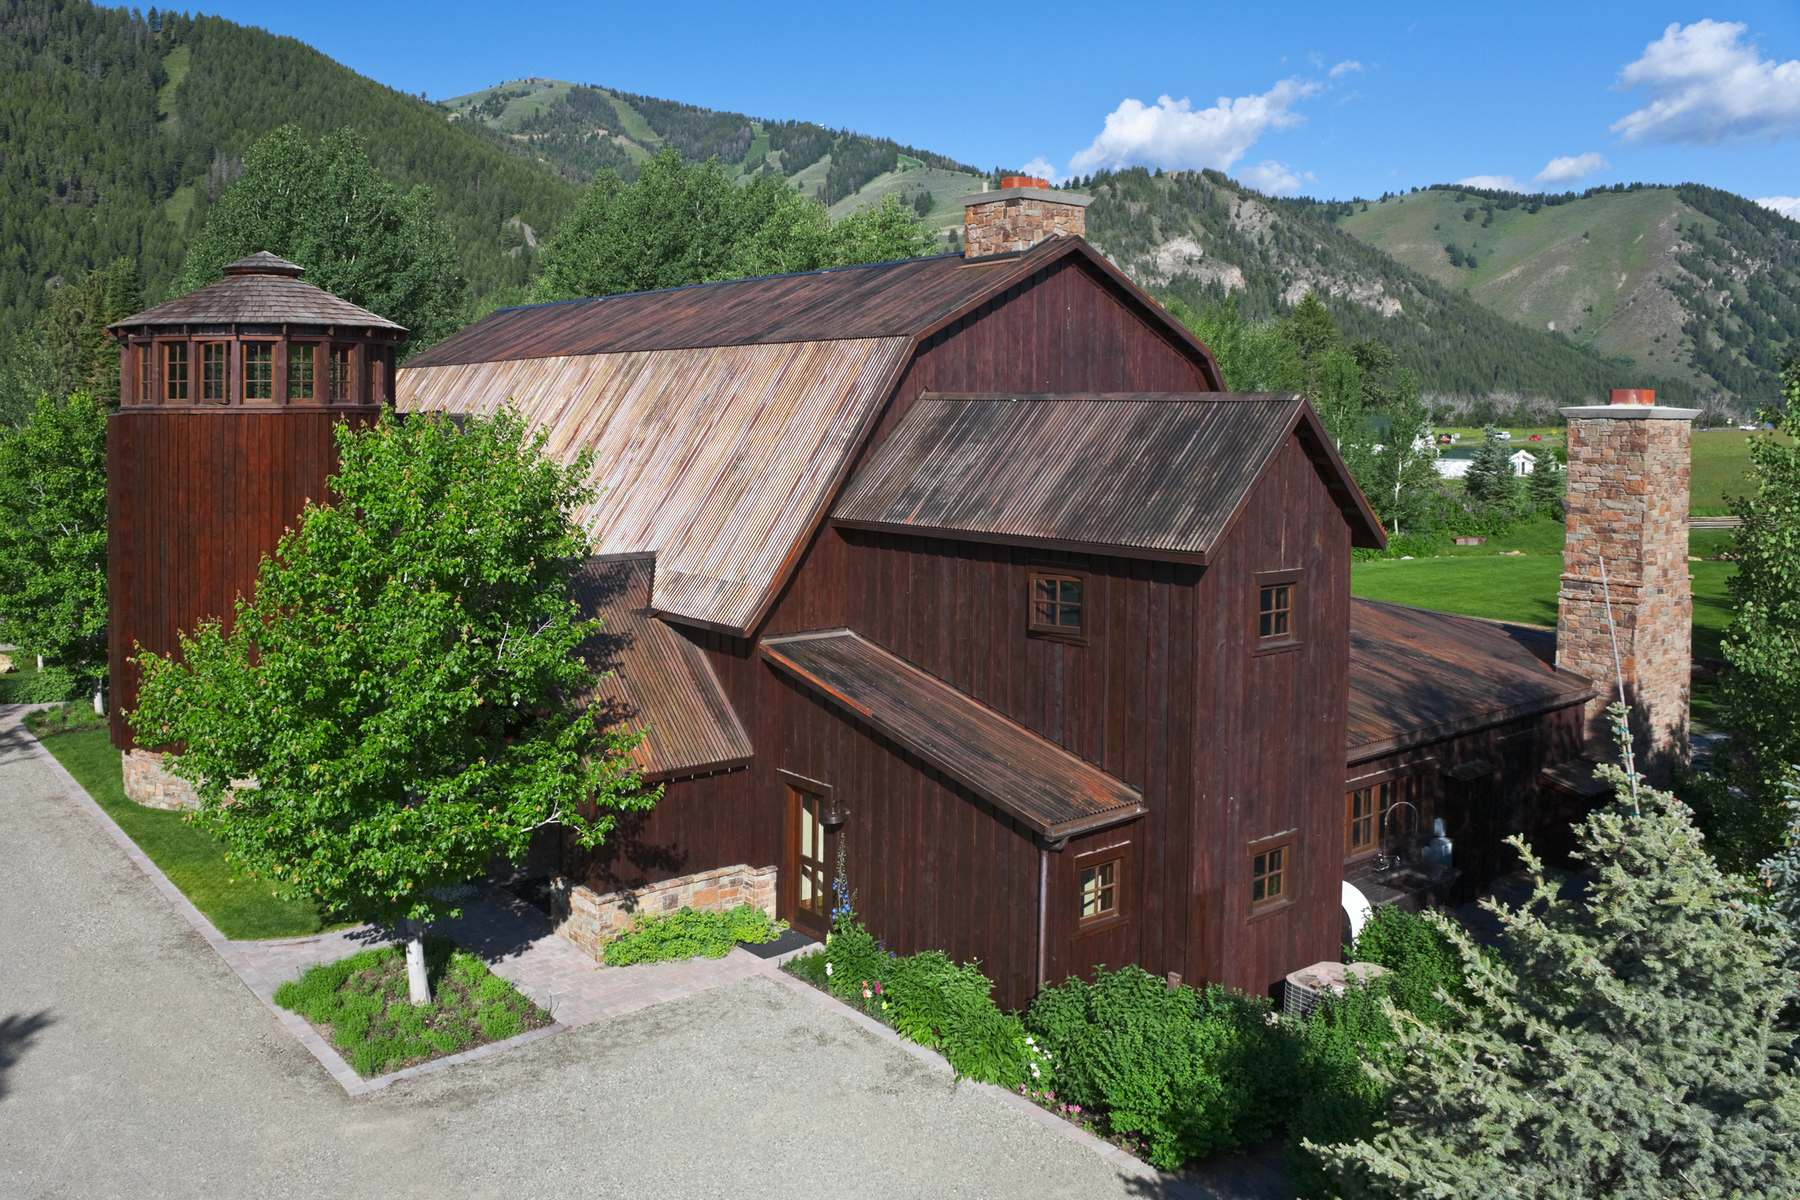 Single Family Home for Sale at Sun Valley's Historic Western Family Compound 105 Farnlun Place Sun Valley, Idaho 83353 United States